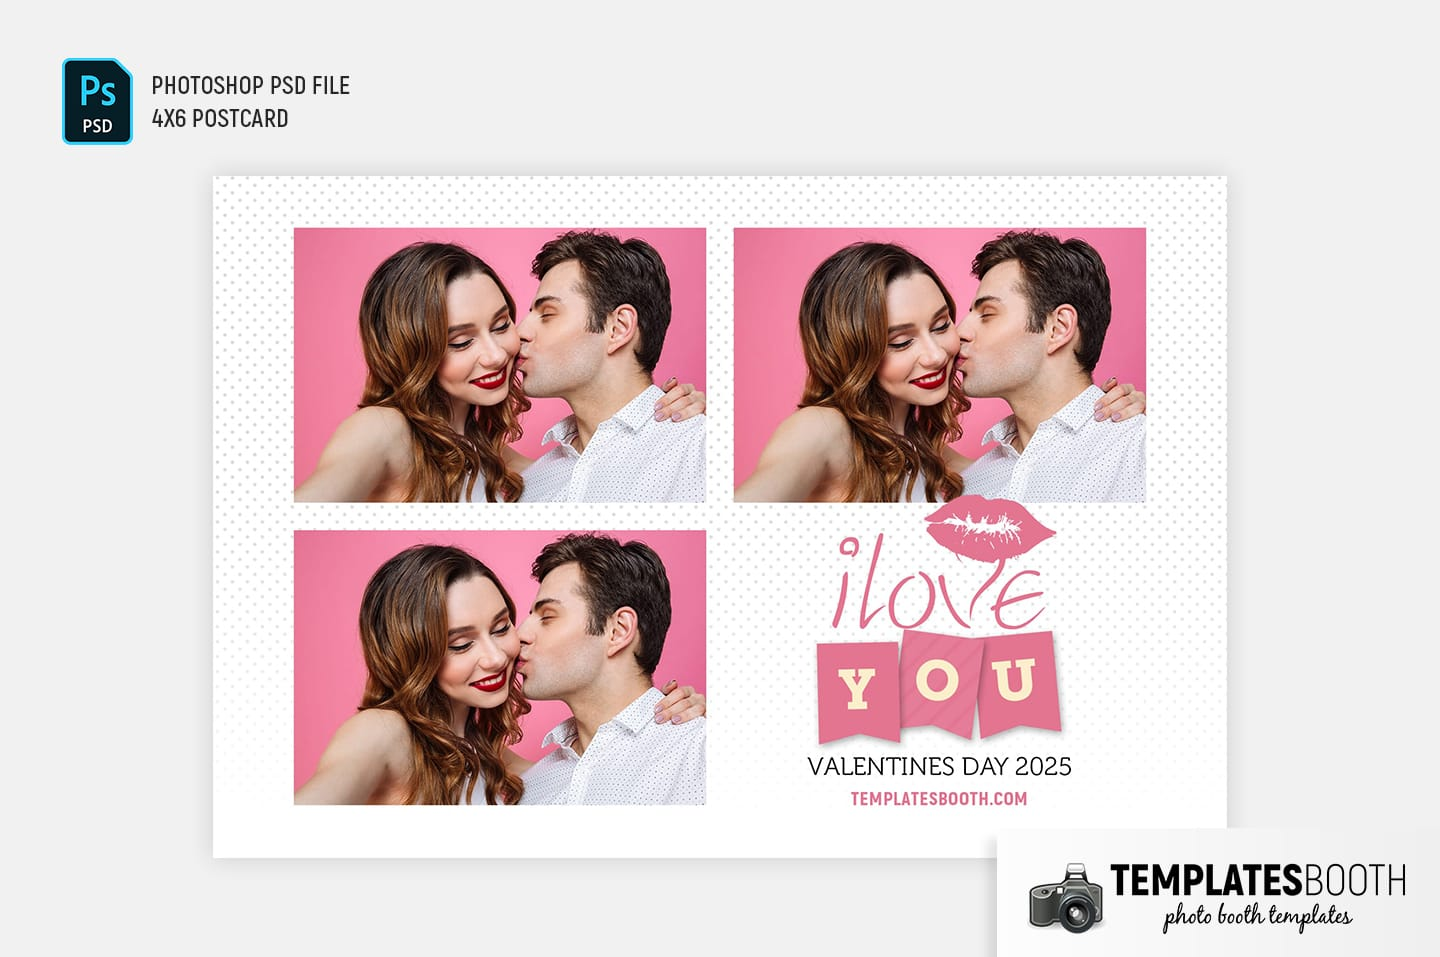 Valentines Kiss Photo Booth Template (4x6 postcard)